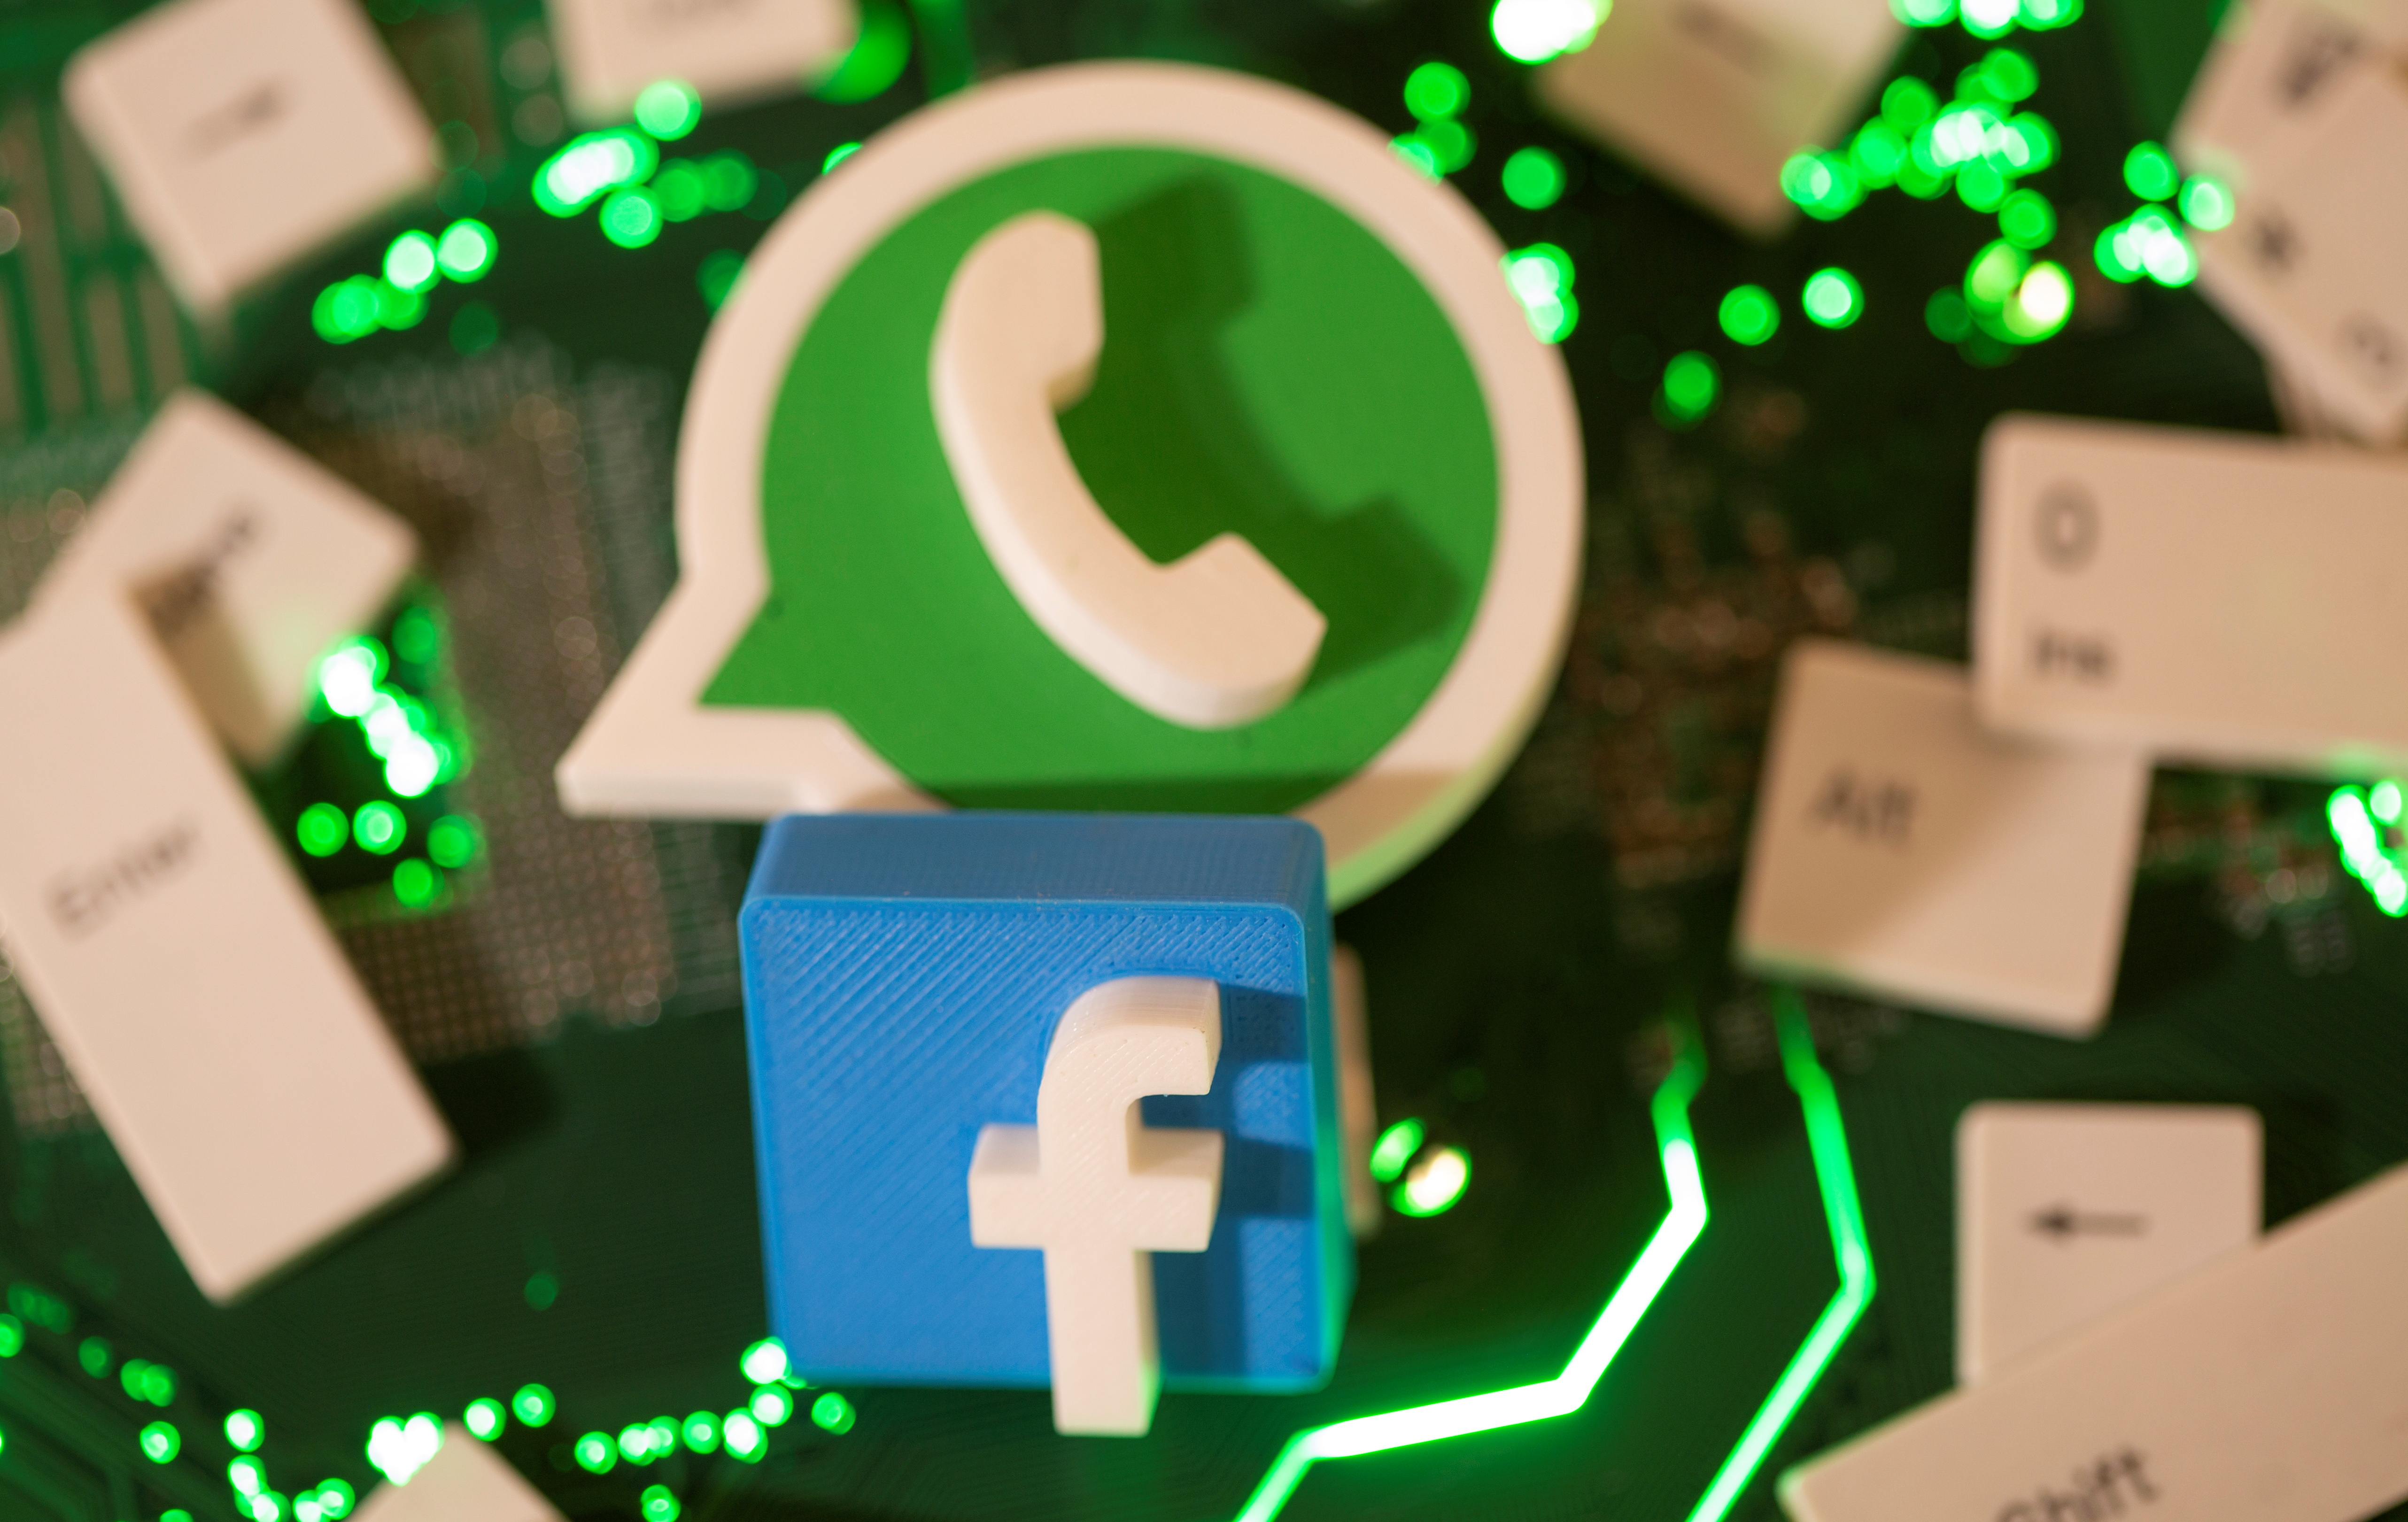 3D printed Facebook and WhatsApp logos and keyboard buttons are placed on a computer motherboard in this illustration taken January 21, 2021. REUTERS/Dado Ruvic/File Photo